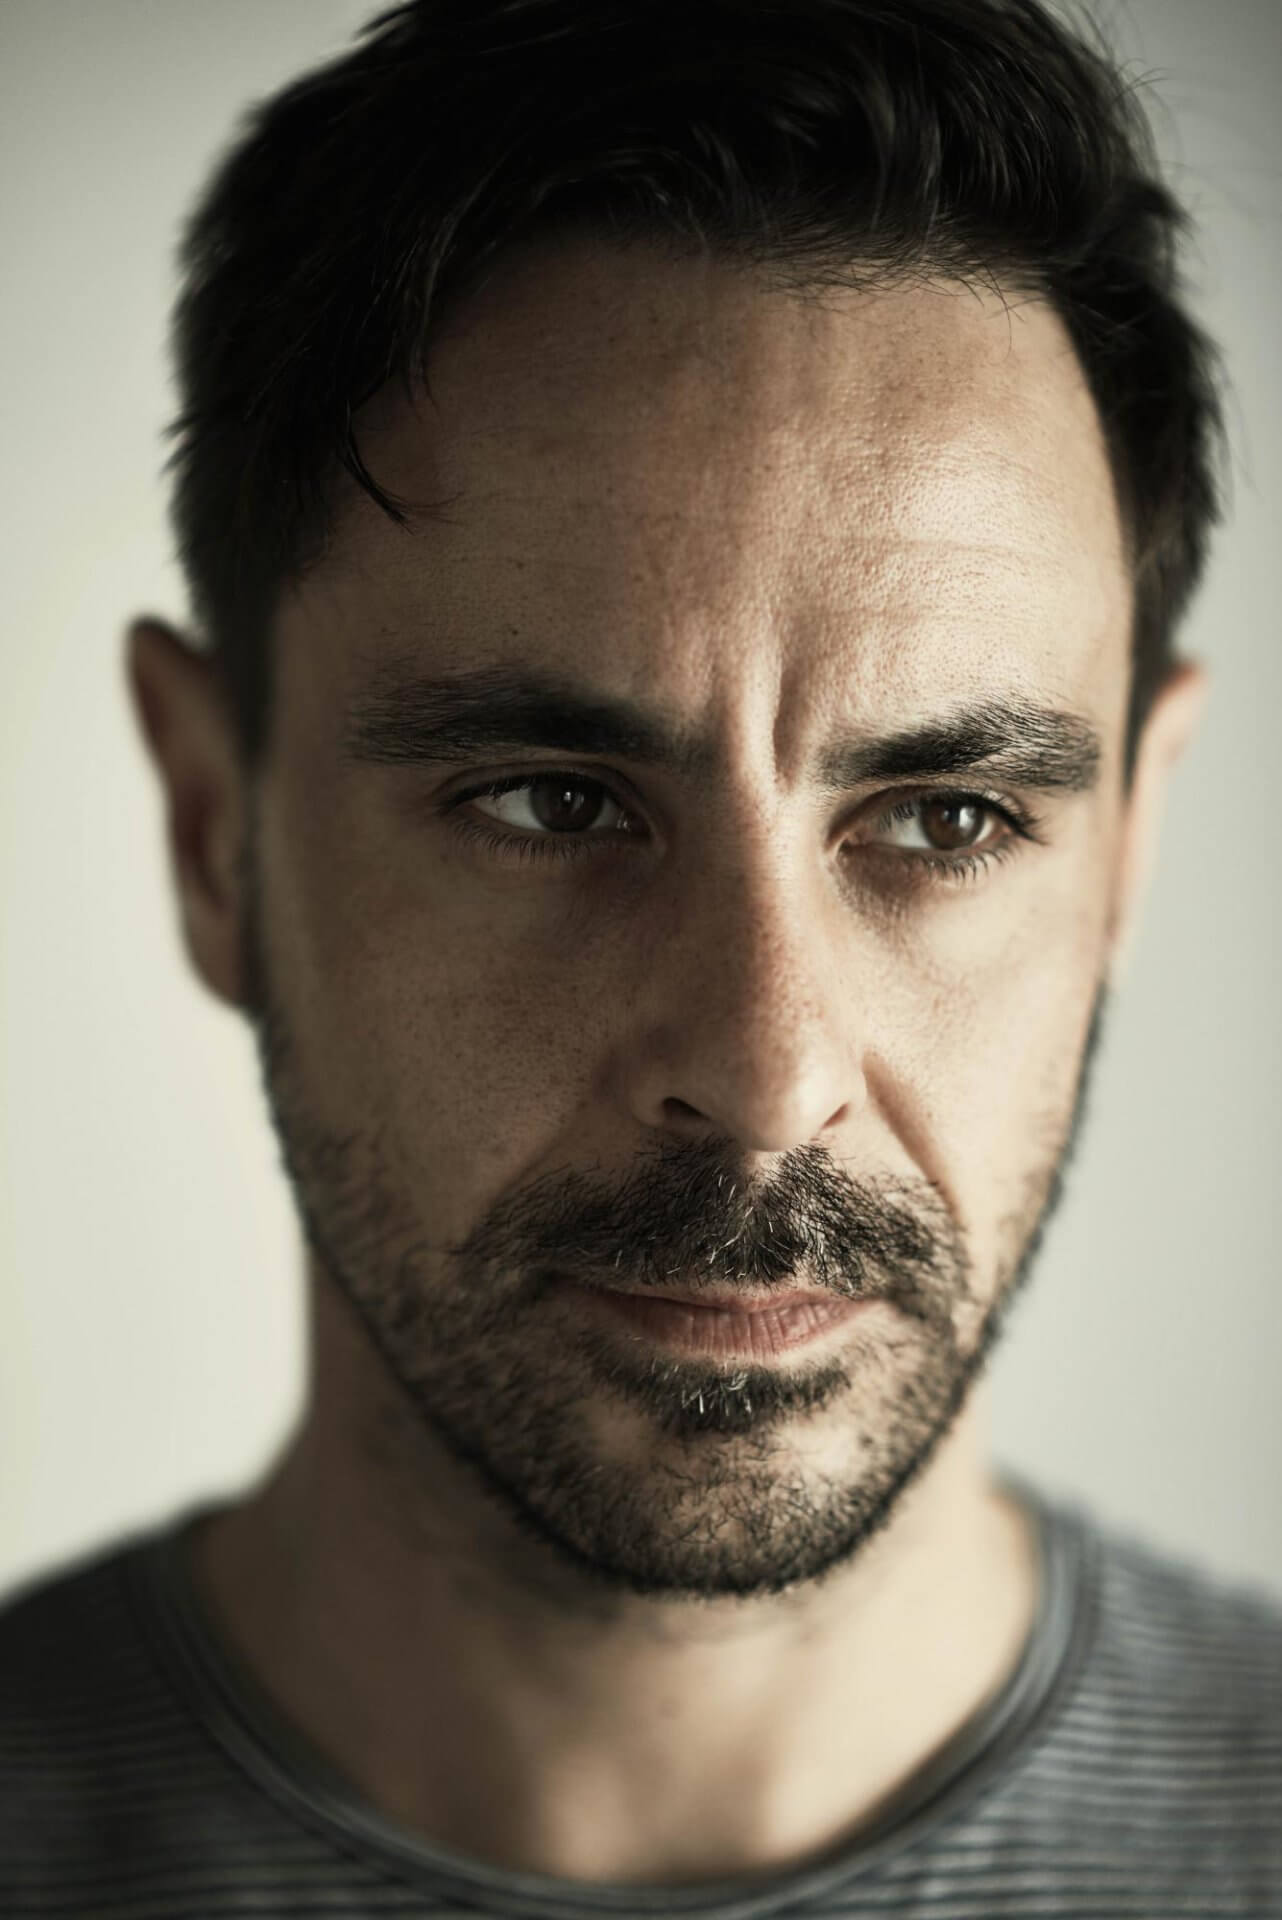 Actor Emun Elliott looks off to the side in this head shot